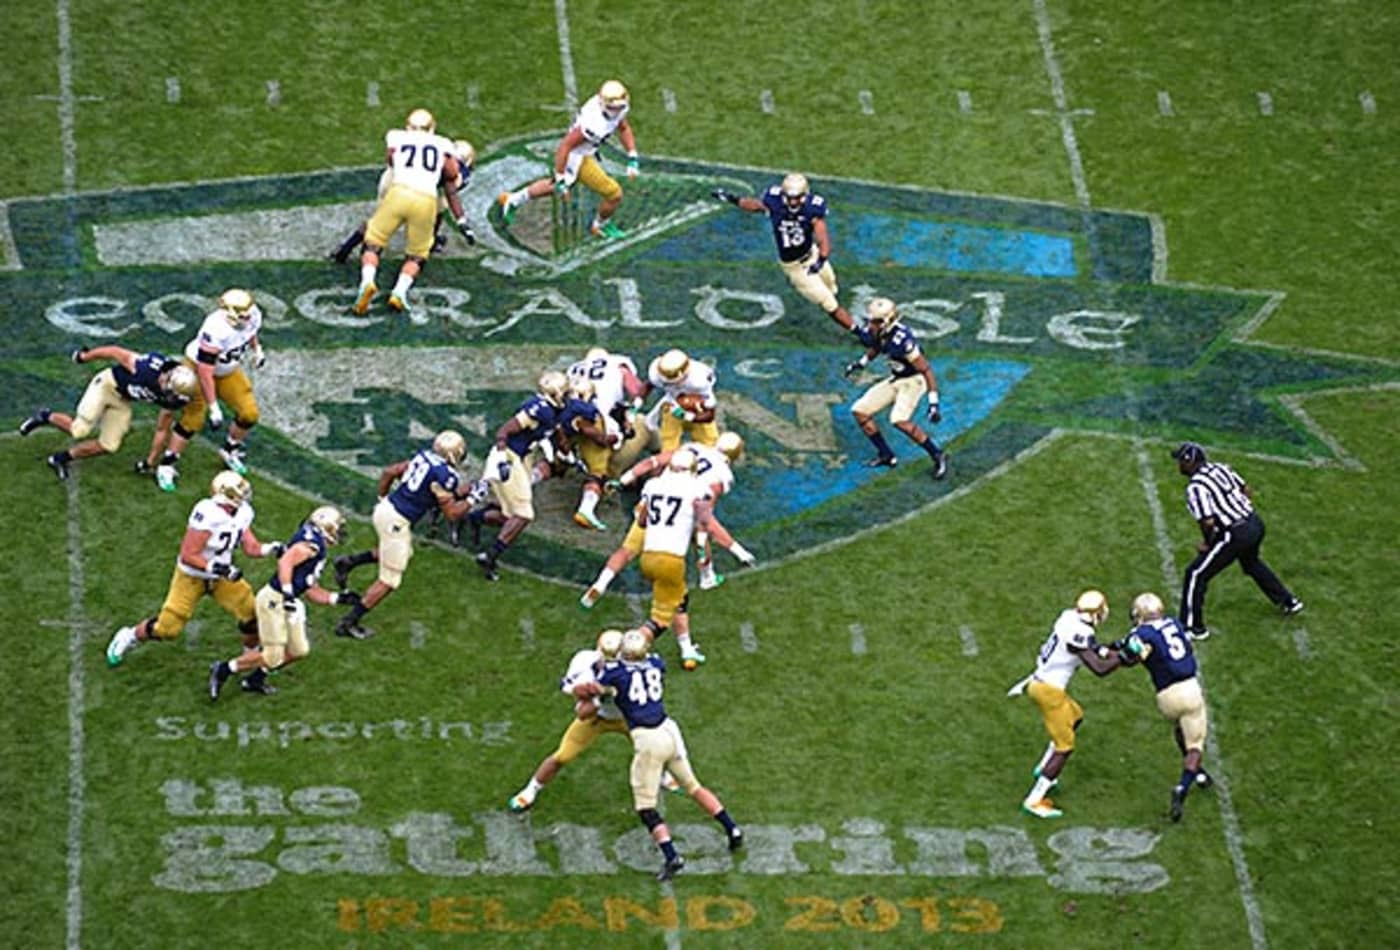 Notre-Dame-Navy-Most-Expensive-College-Football-Tickets-2012.jpg